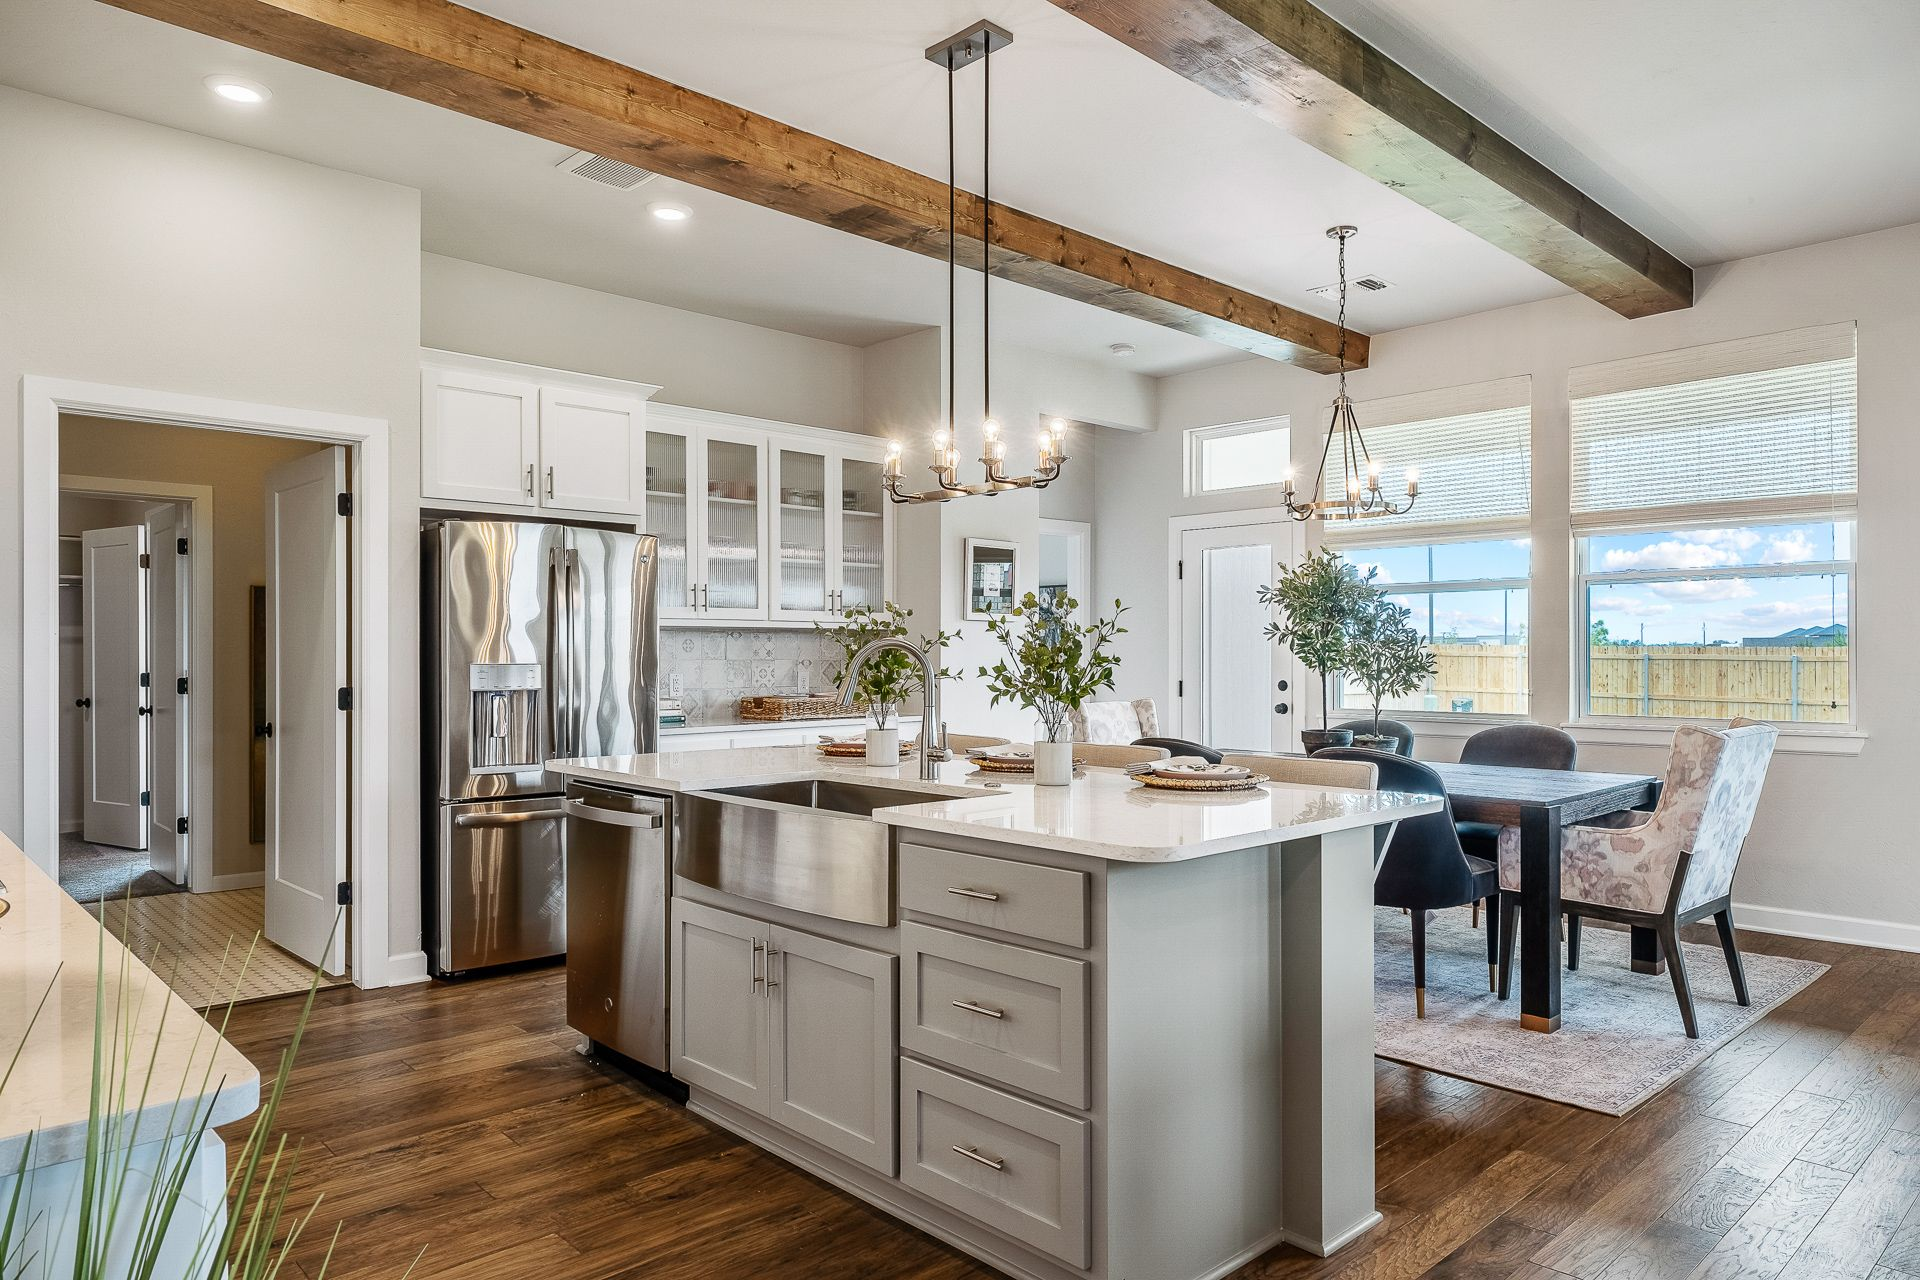 Kitchen featured in the Nottingham By Ideal Homes in Oklahoma City, OK